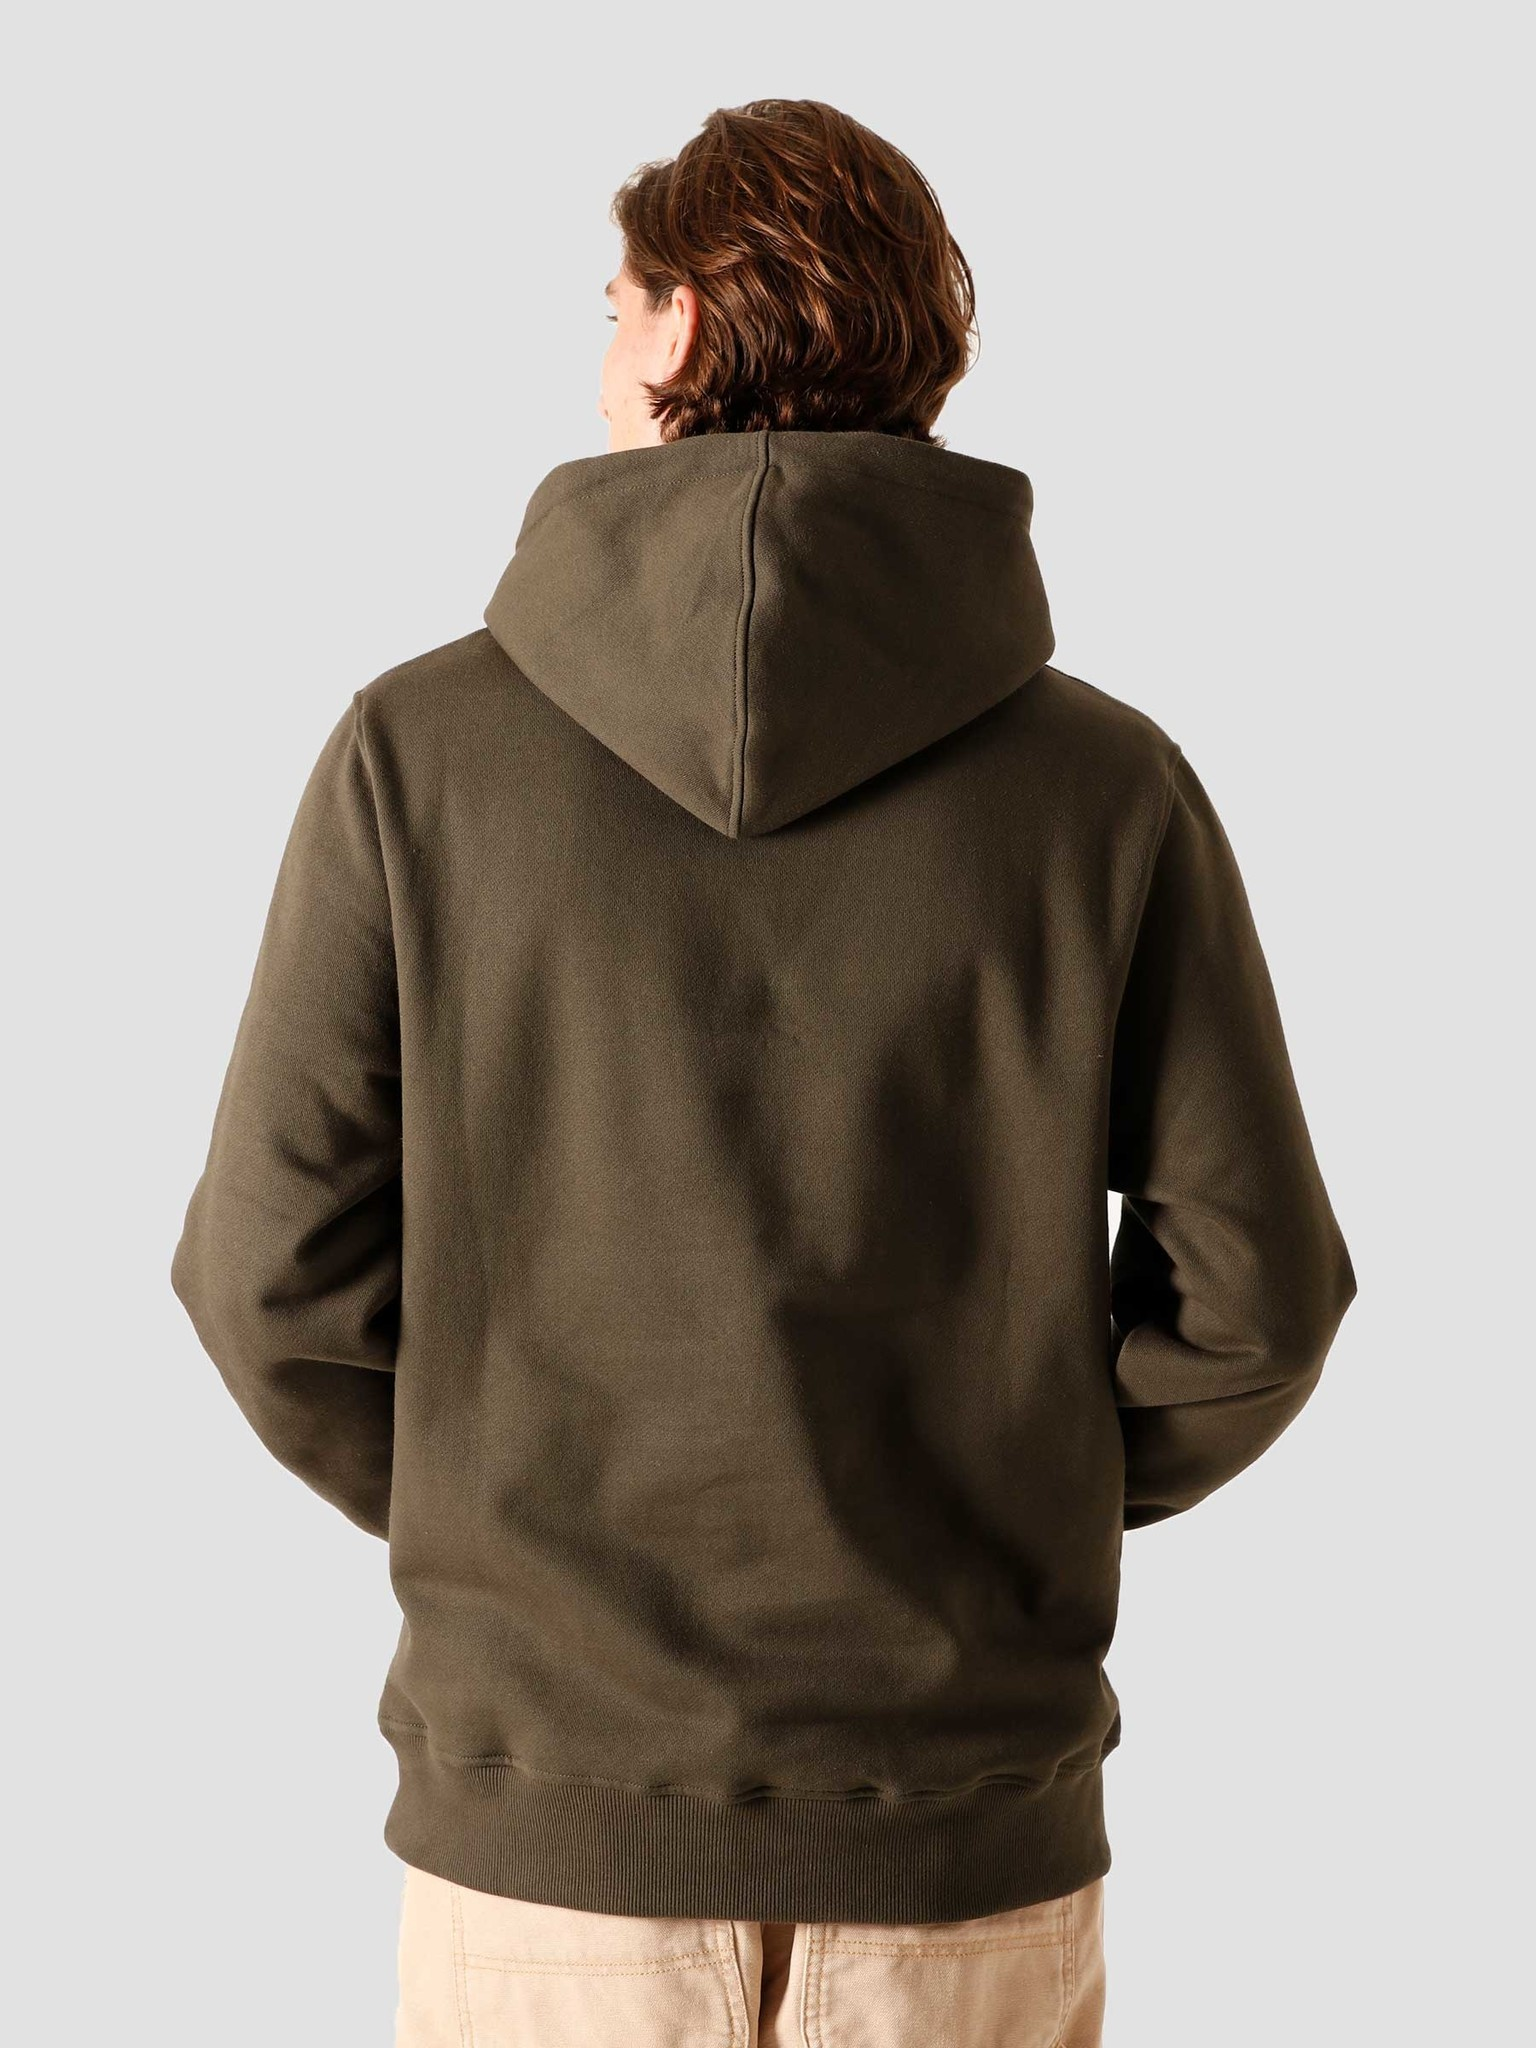 Daily Paper Daily Paper Alias Hoodie Forest Green 2021107